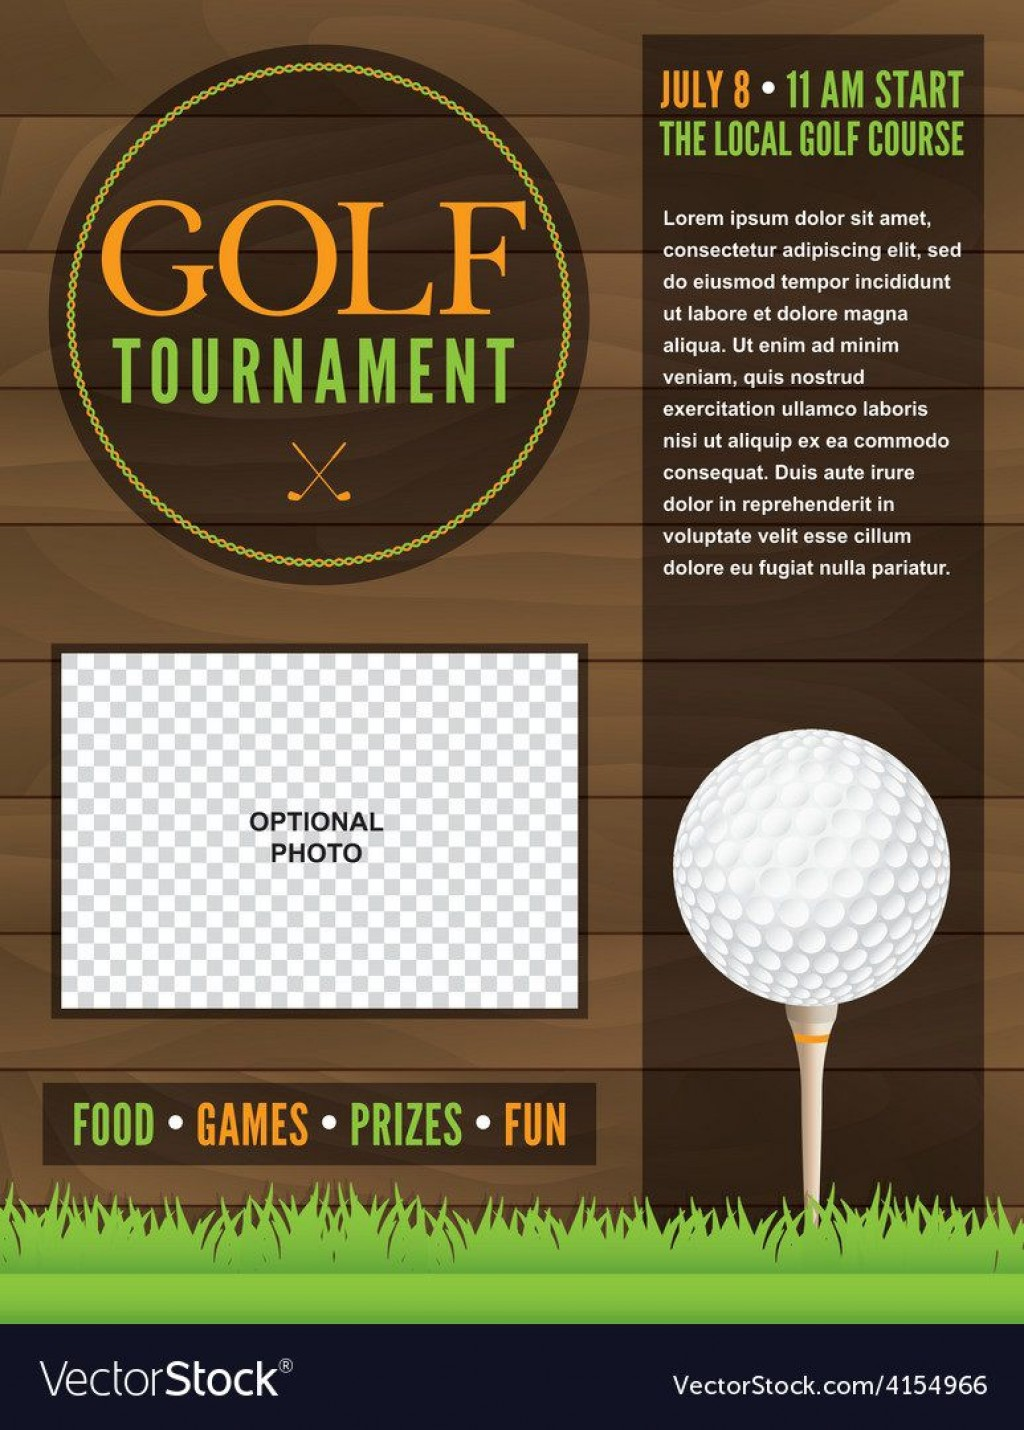 008 Simple Golf Tournament Flyer Template Design  Word Free PdfLarge